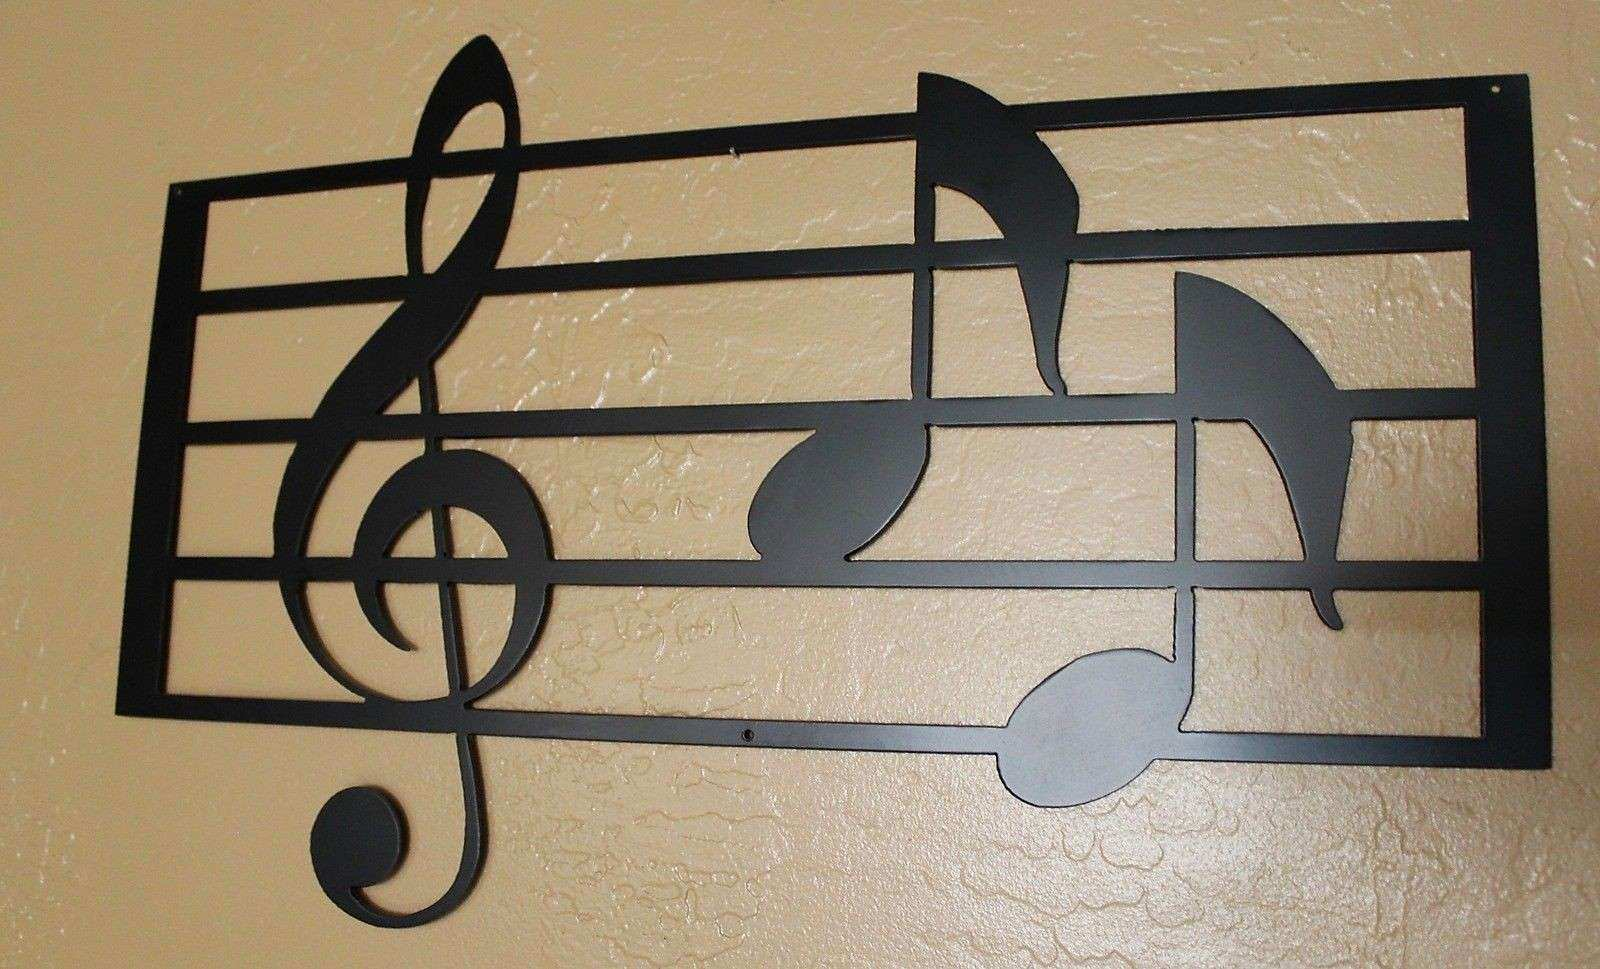 Metal Wall Art Home Decor Music Notes Musical Notes • $25